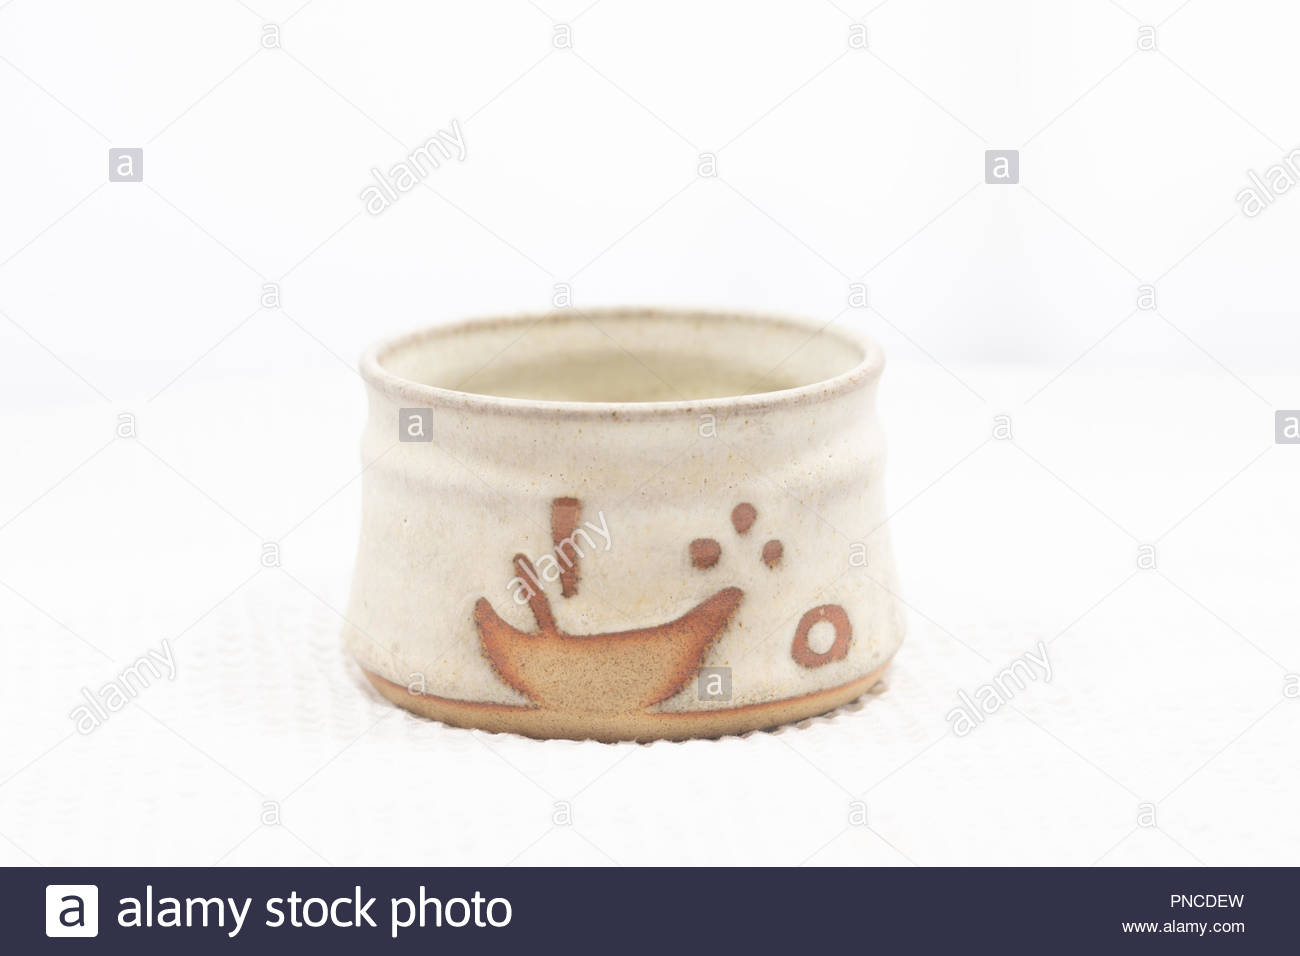 An empty earthenware bowl, from horizontal perspective - Stock Image